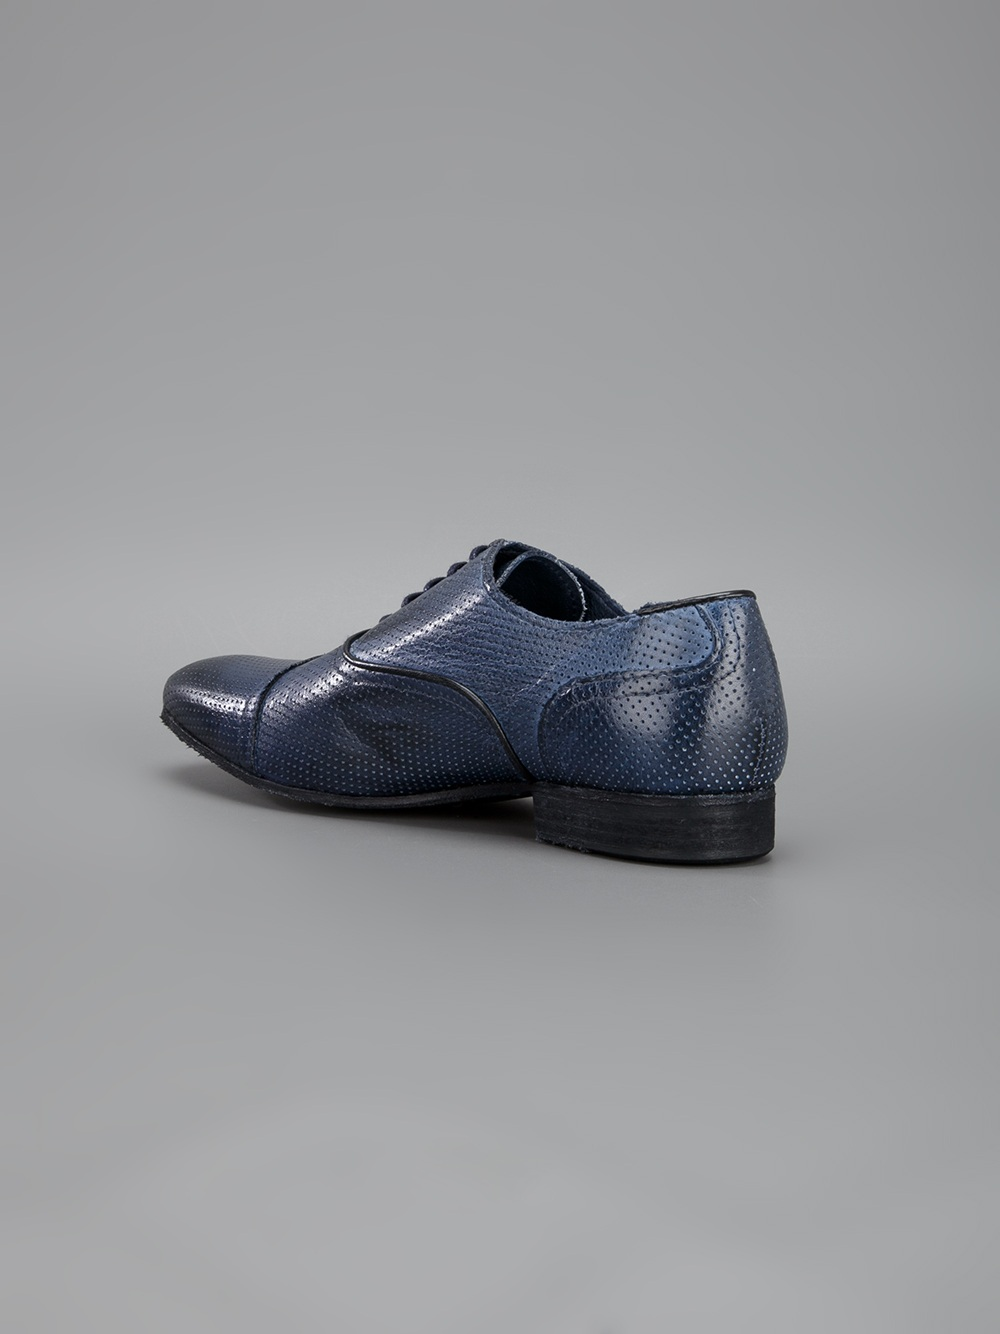 Roberto Cavalli Laceup Oxford Shoe In Blue For Men | Lyst